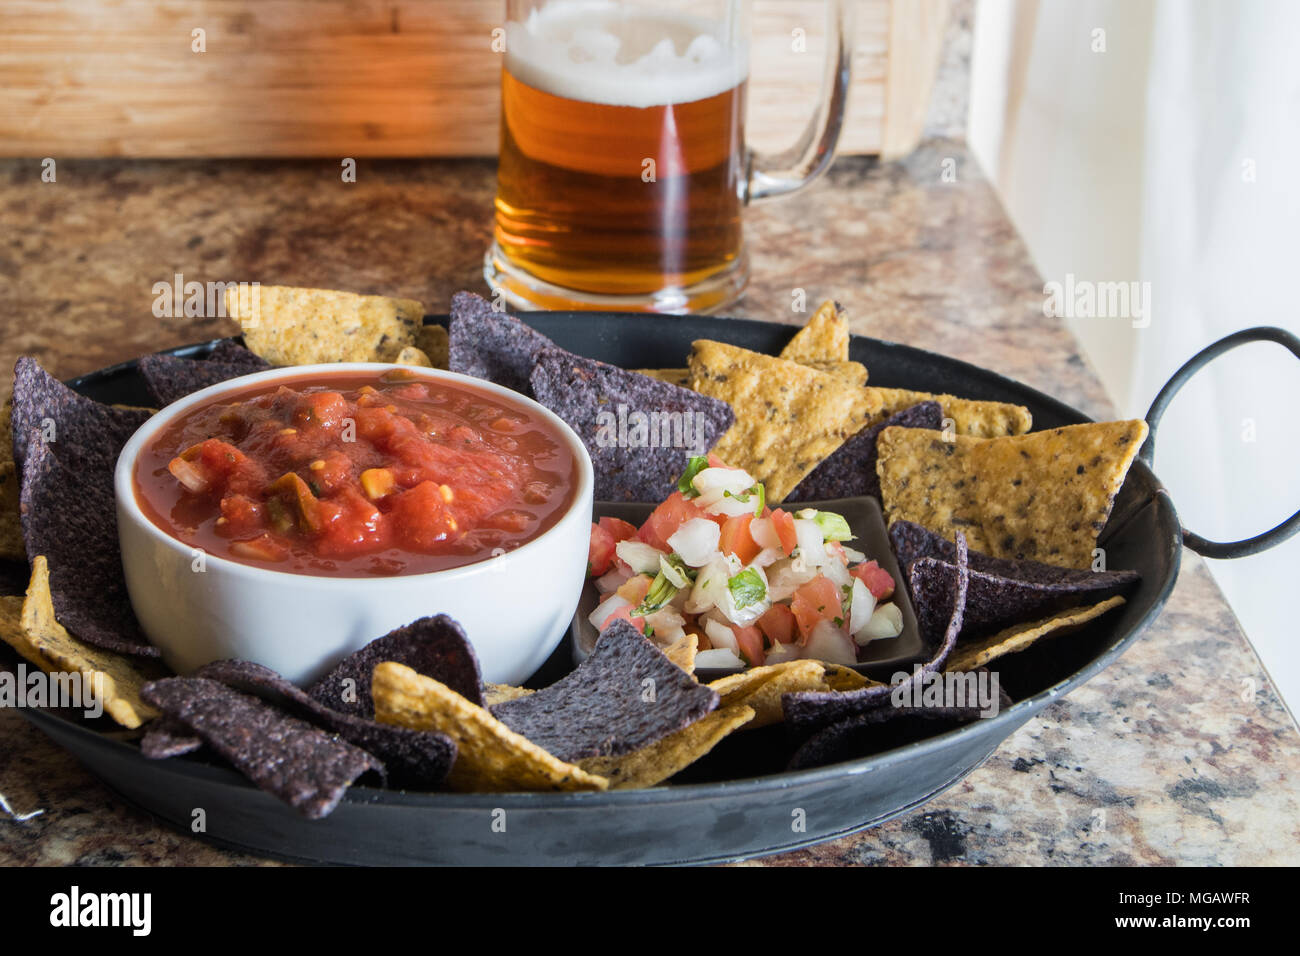 Platter Of Chips And Salsa With Beer Stock Photo Alamy